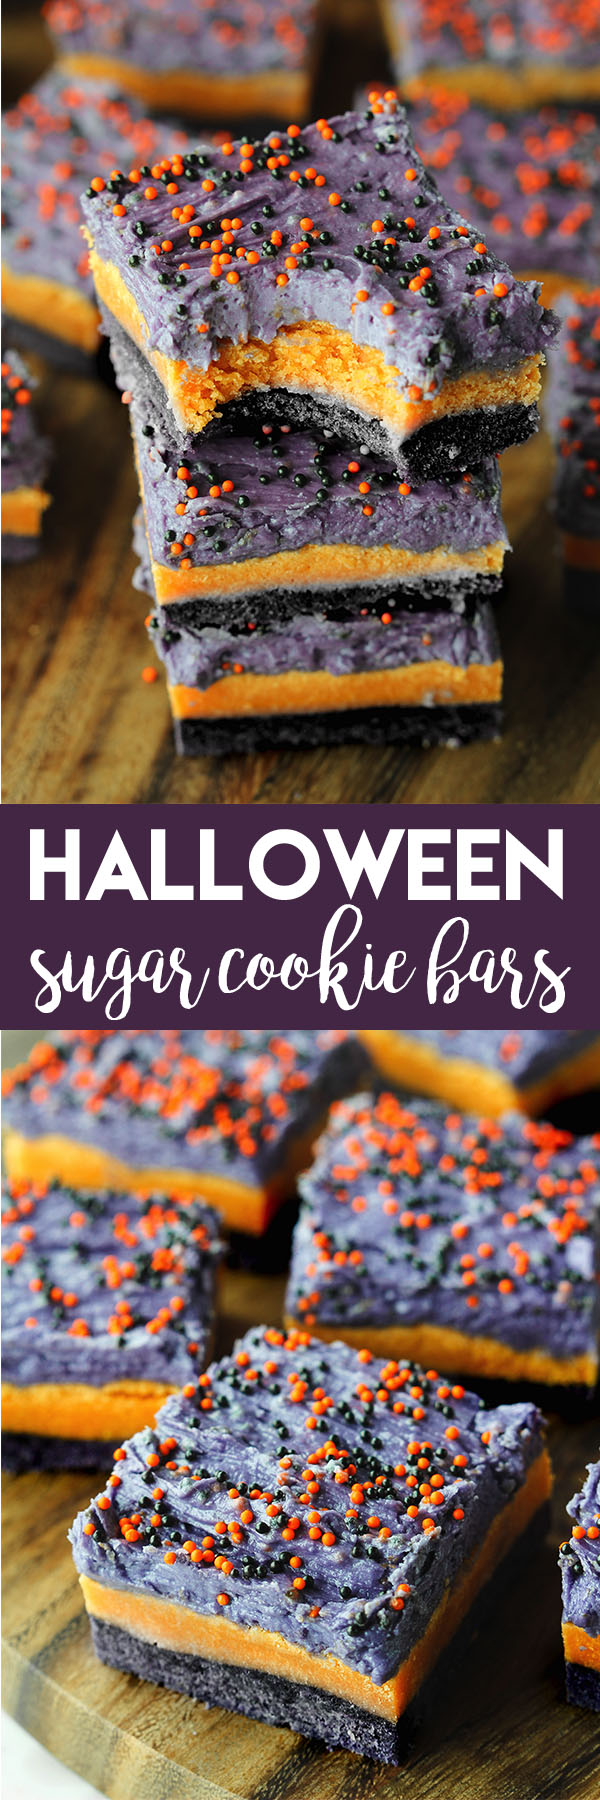 If you need an easy Halloween treat idea, make these Halloween Sugar Cookies Bars! They are so festive, but take such little effort. They would be great for school Halloween treats! #halloween #halloweenfood #halloweendessert #halloweendesserts #halloweenfoodideas #halloweentreats #halloweenrecipe #halloweenrecipes